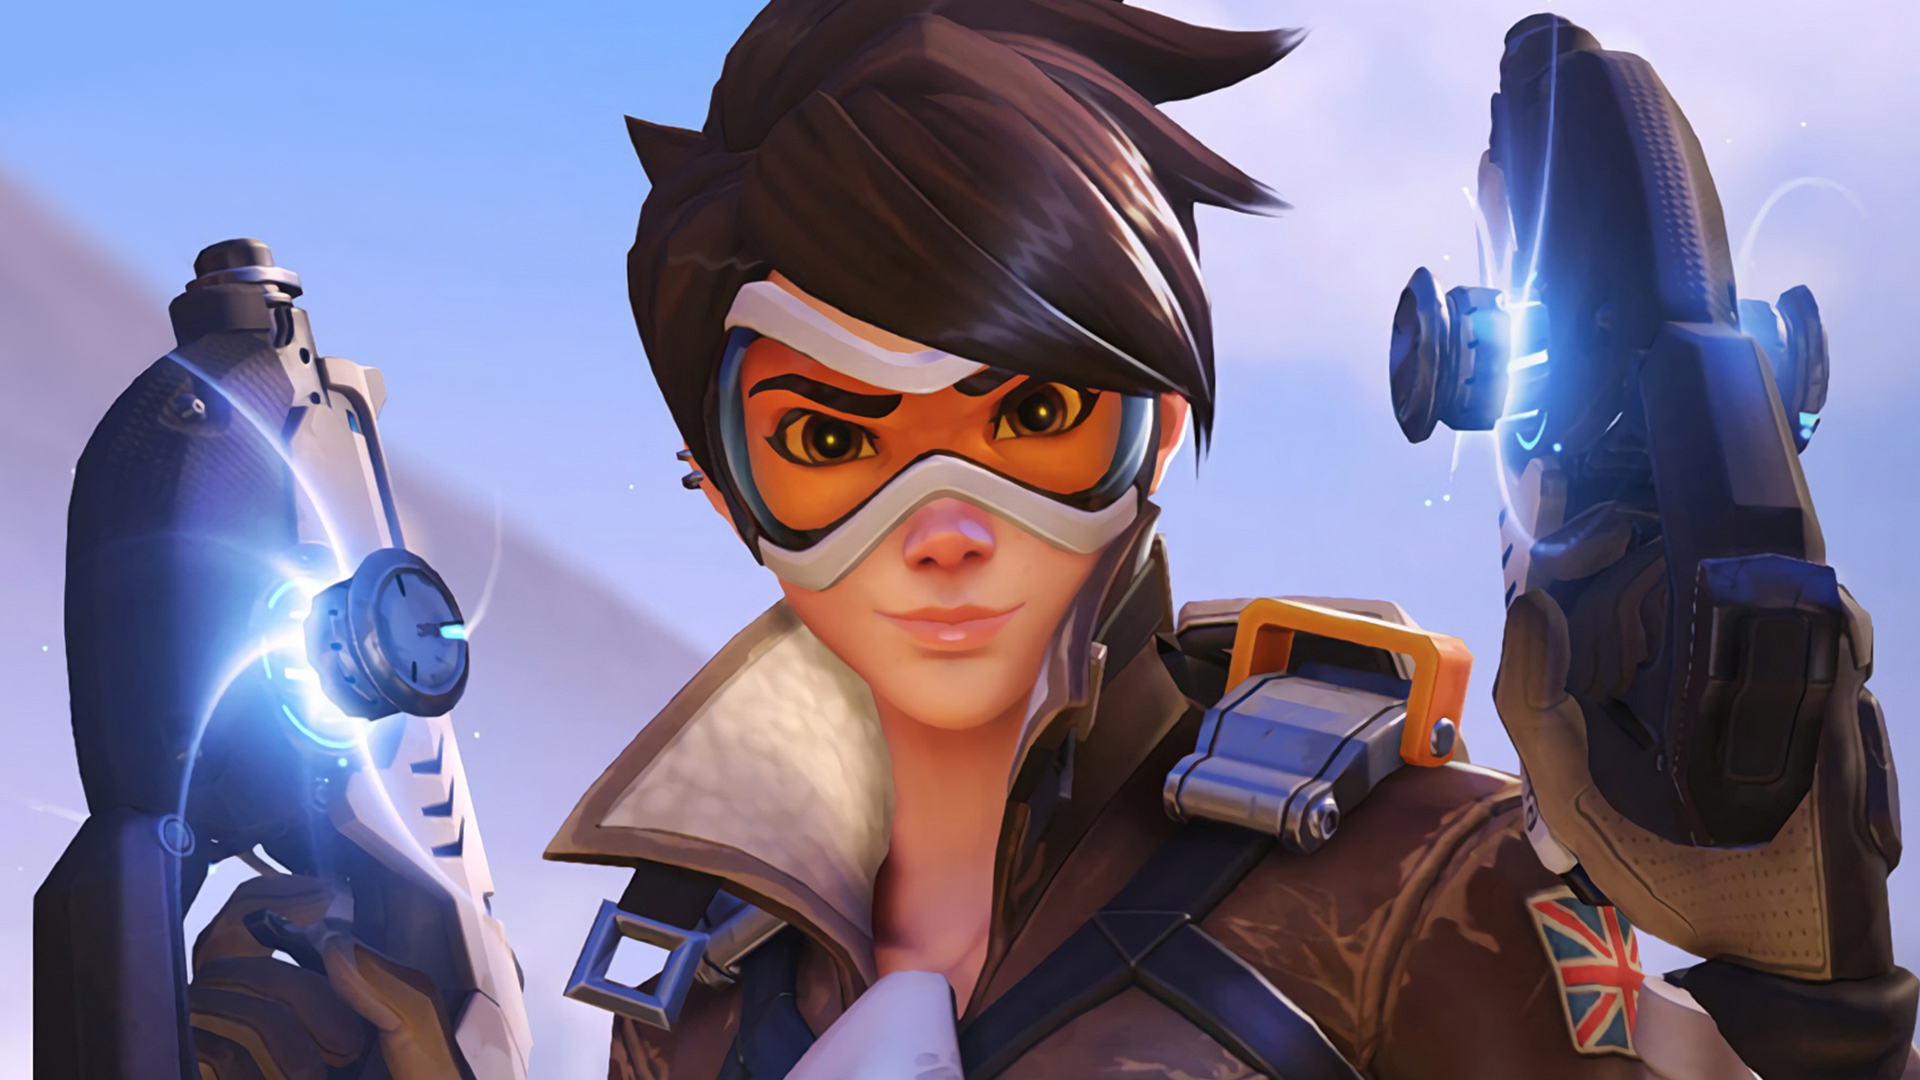 Image result for tracer by overwatch